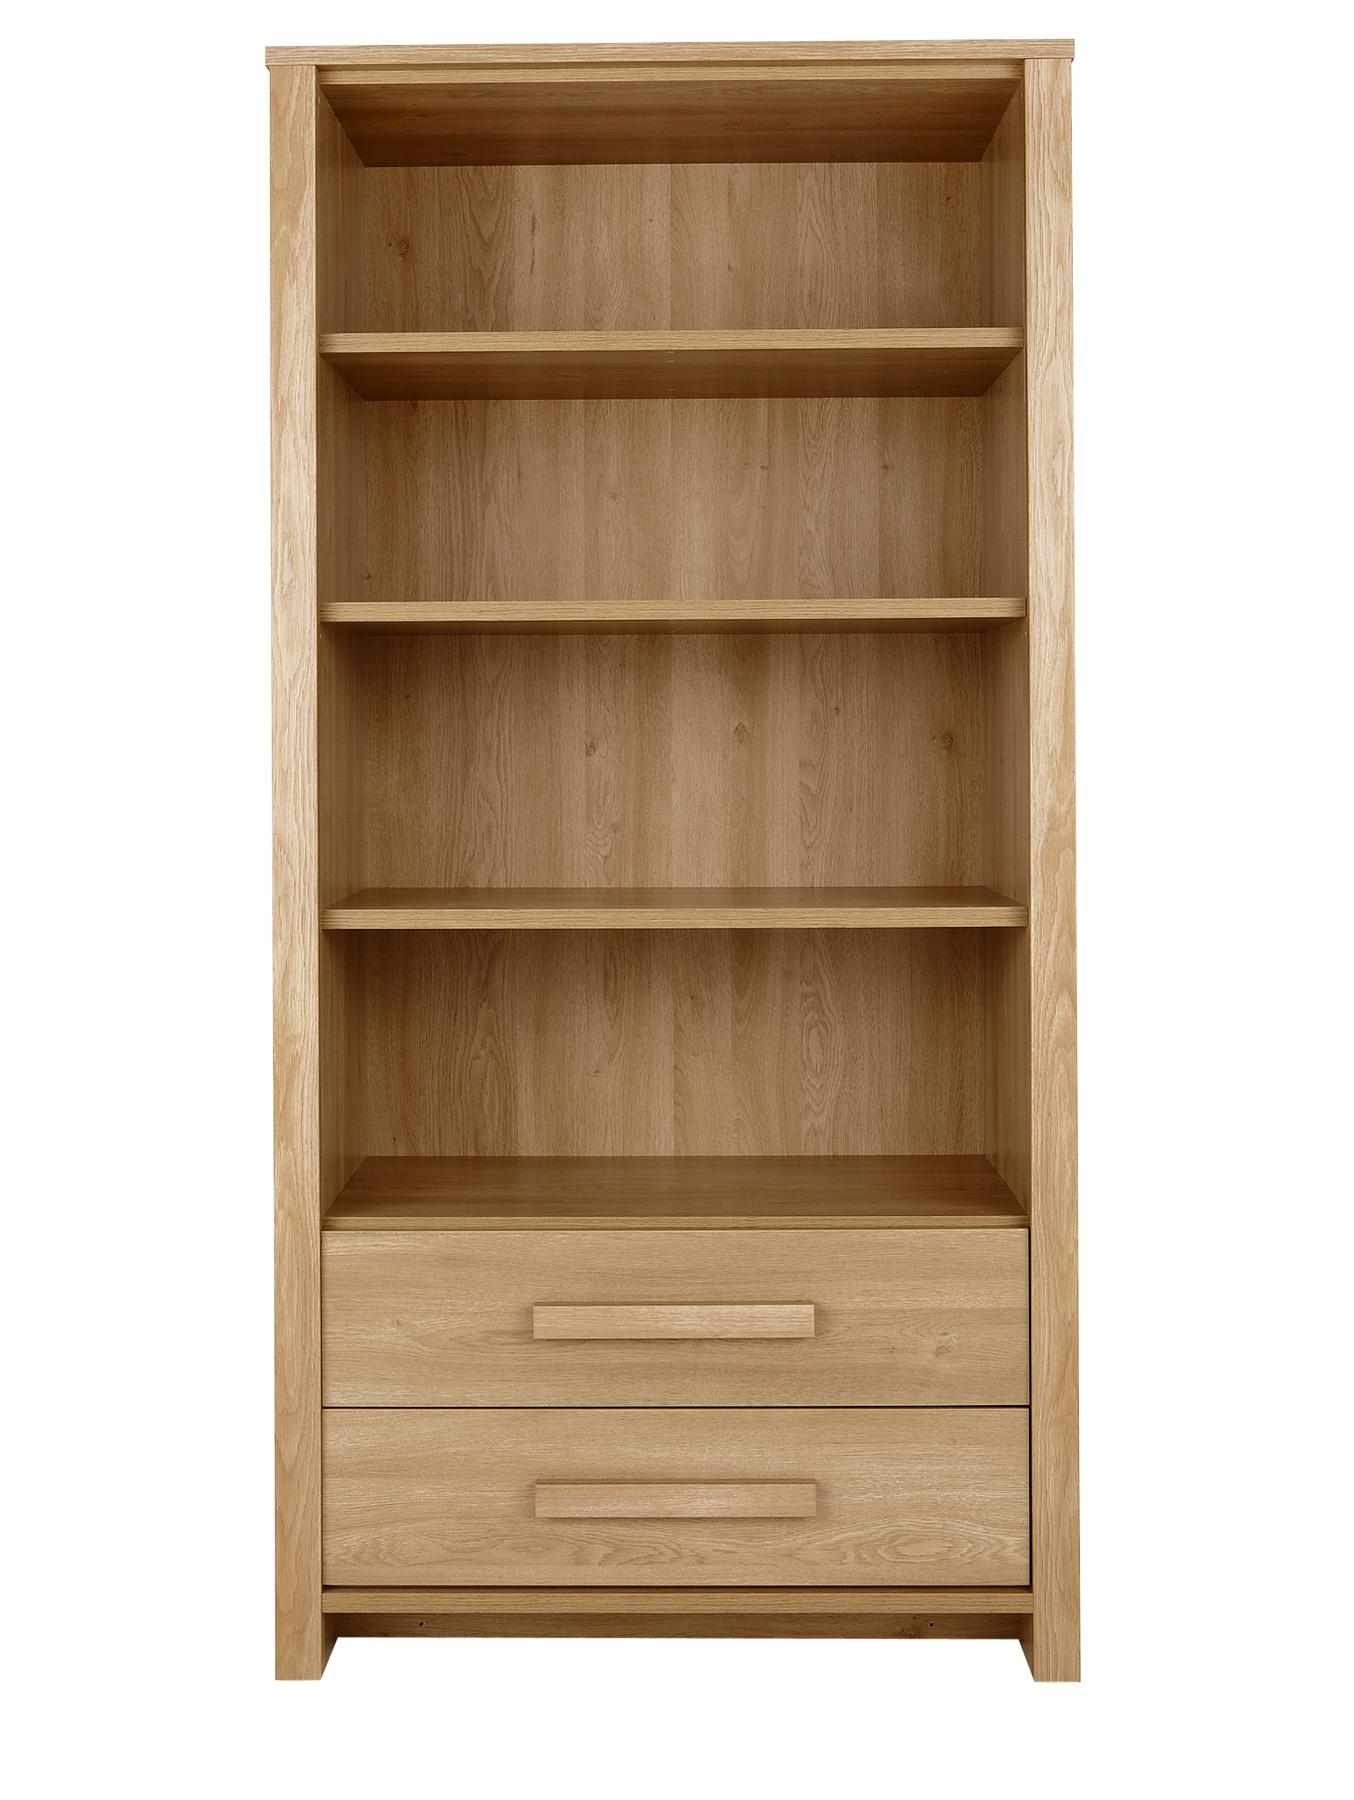 Tuscany Ready Assembled Large Bookcase